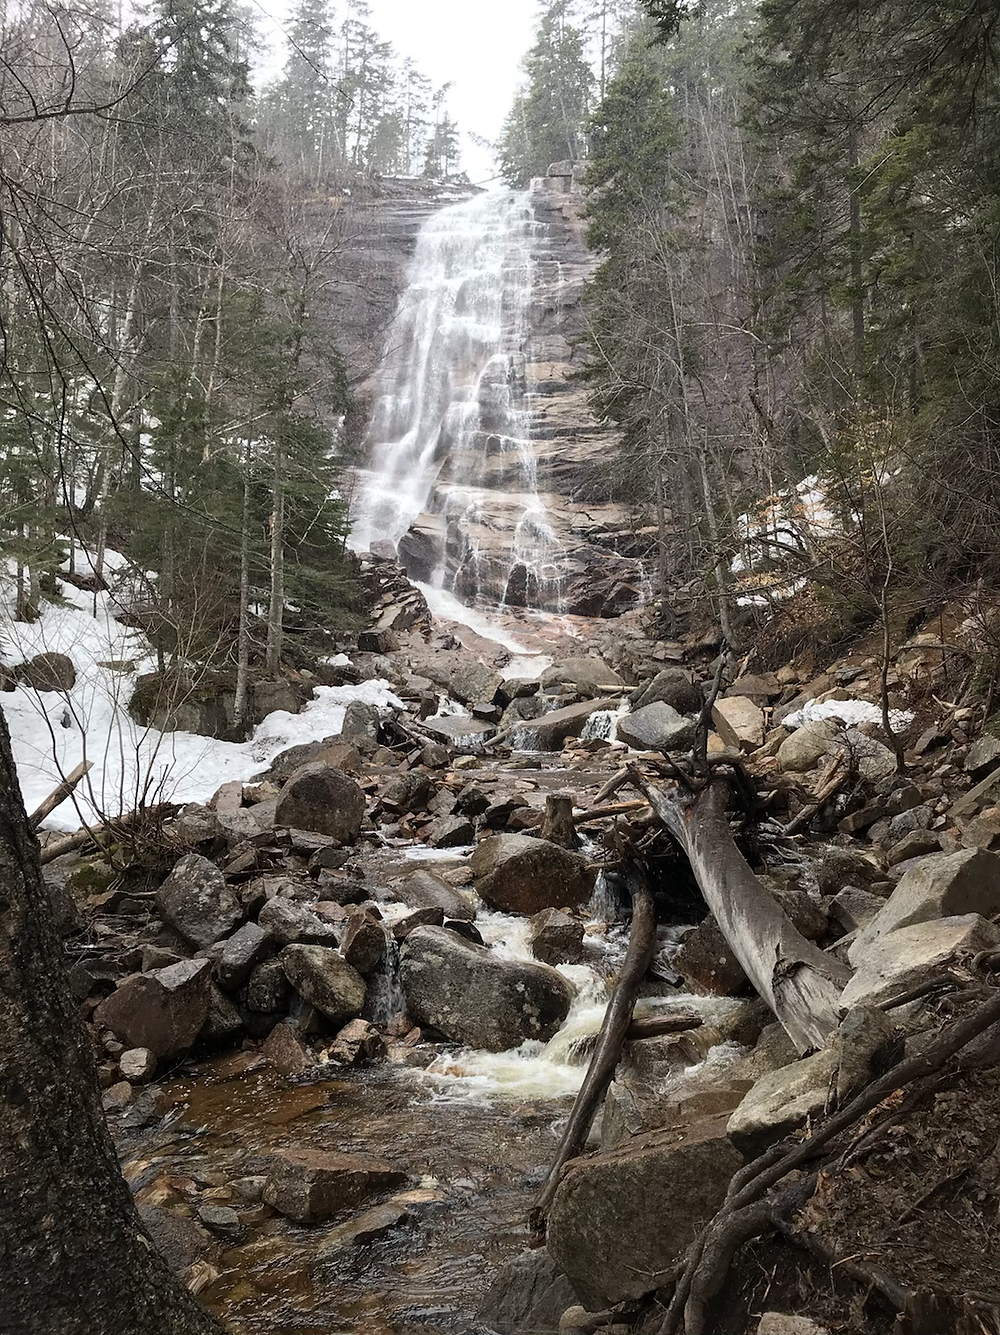 View of the Arethusa Falls